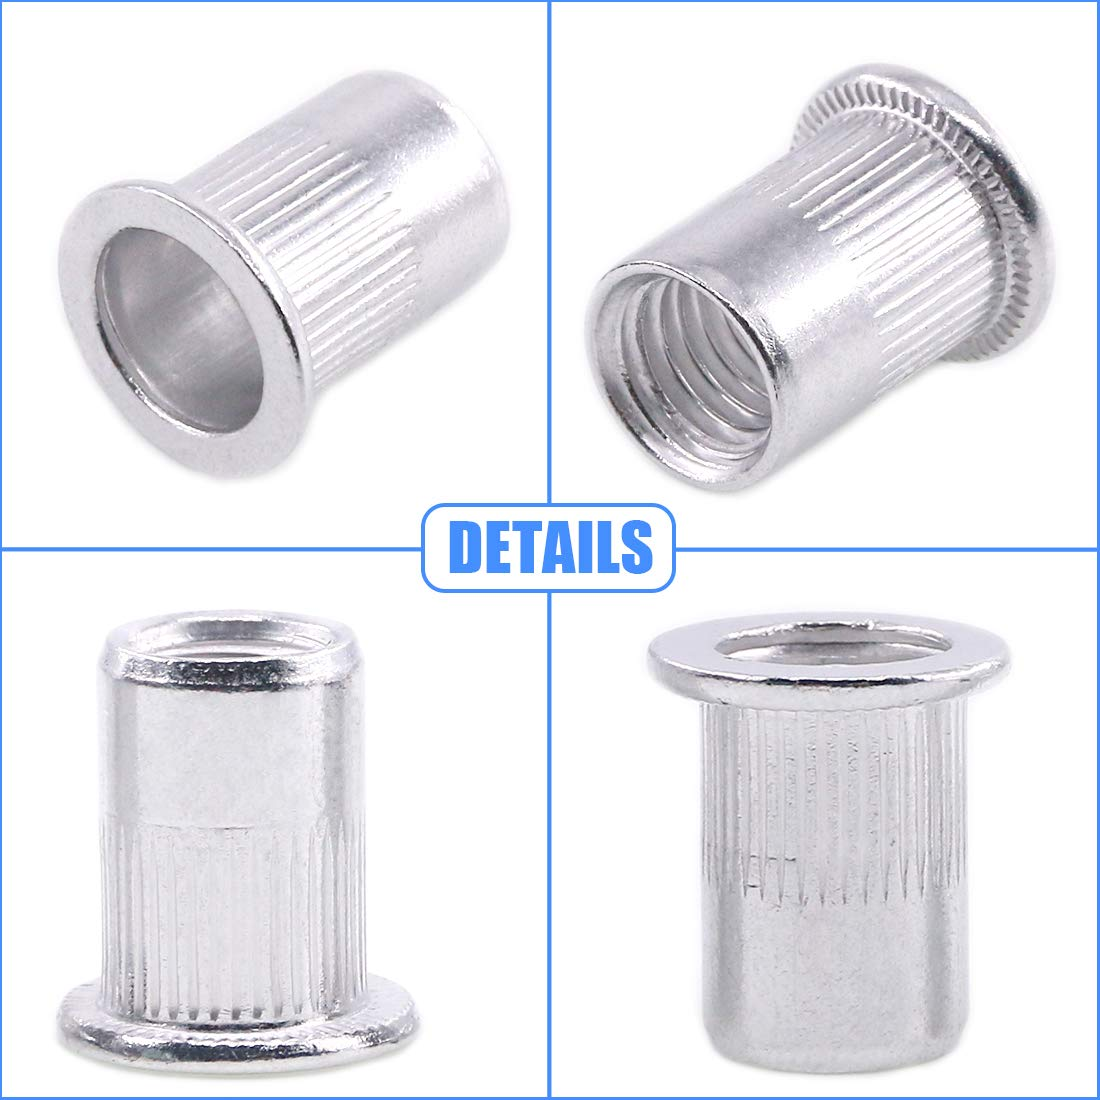 Glarks 110Pcs Aluminum Alloy M3 M4 M5 M6 M8 M10 Flat Head Metric Threaded Rivetnut Insert Nutsert Rivet Nut Assortment Kit